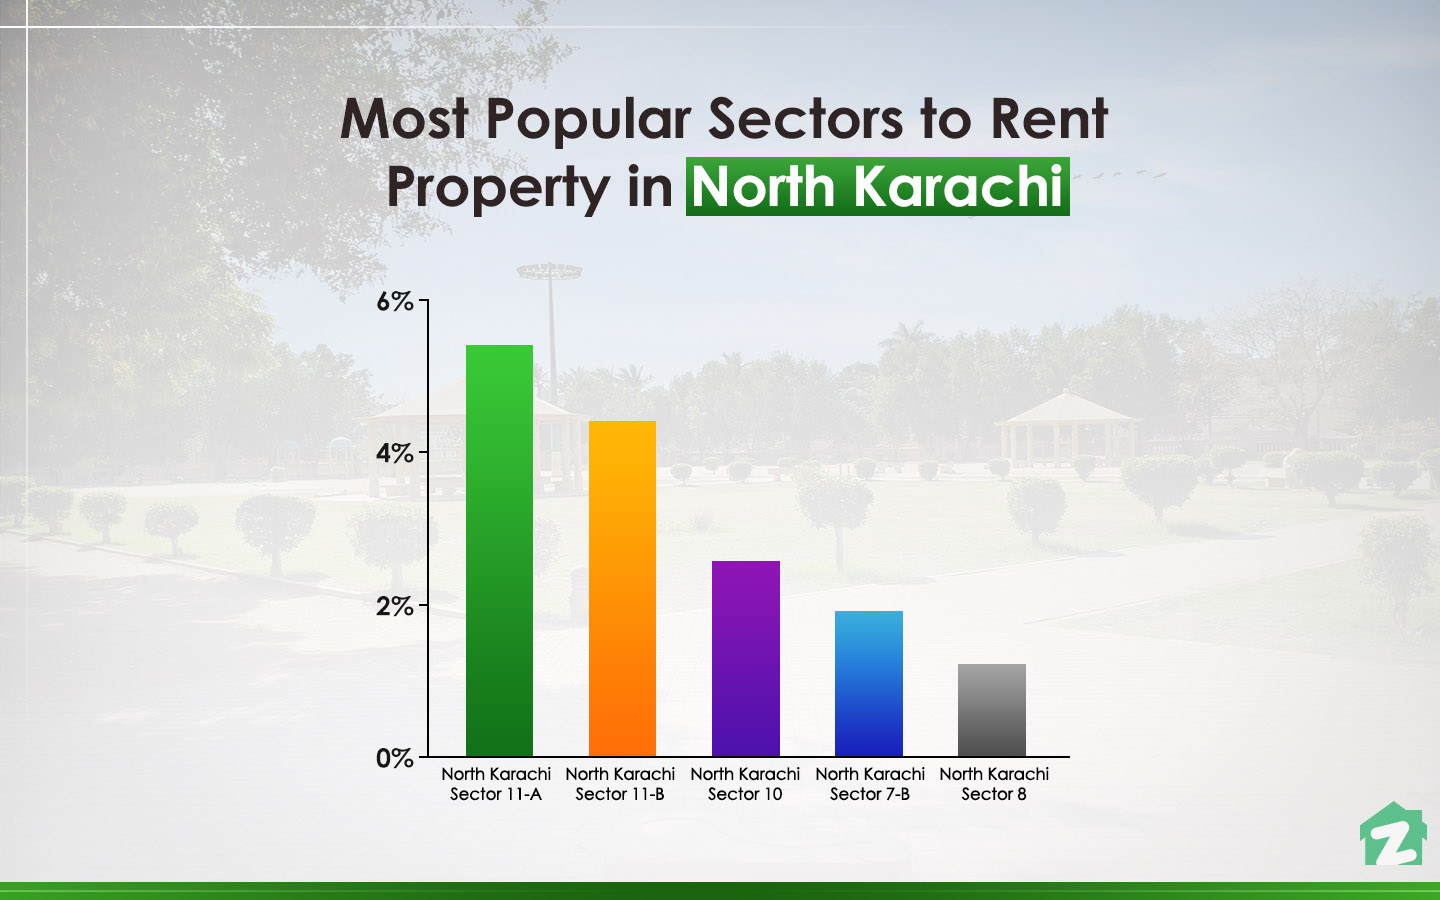 Most Popular Sectors for Renting Properties in North Karachi